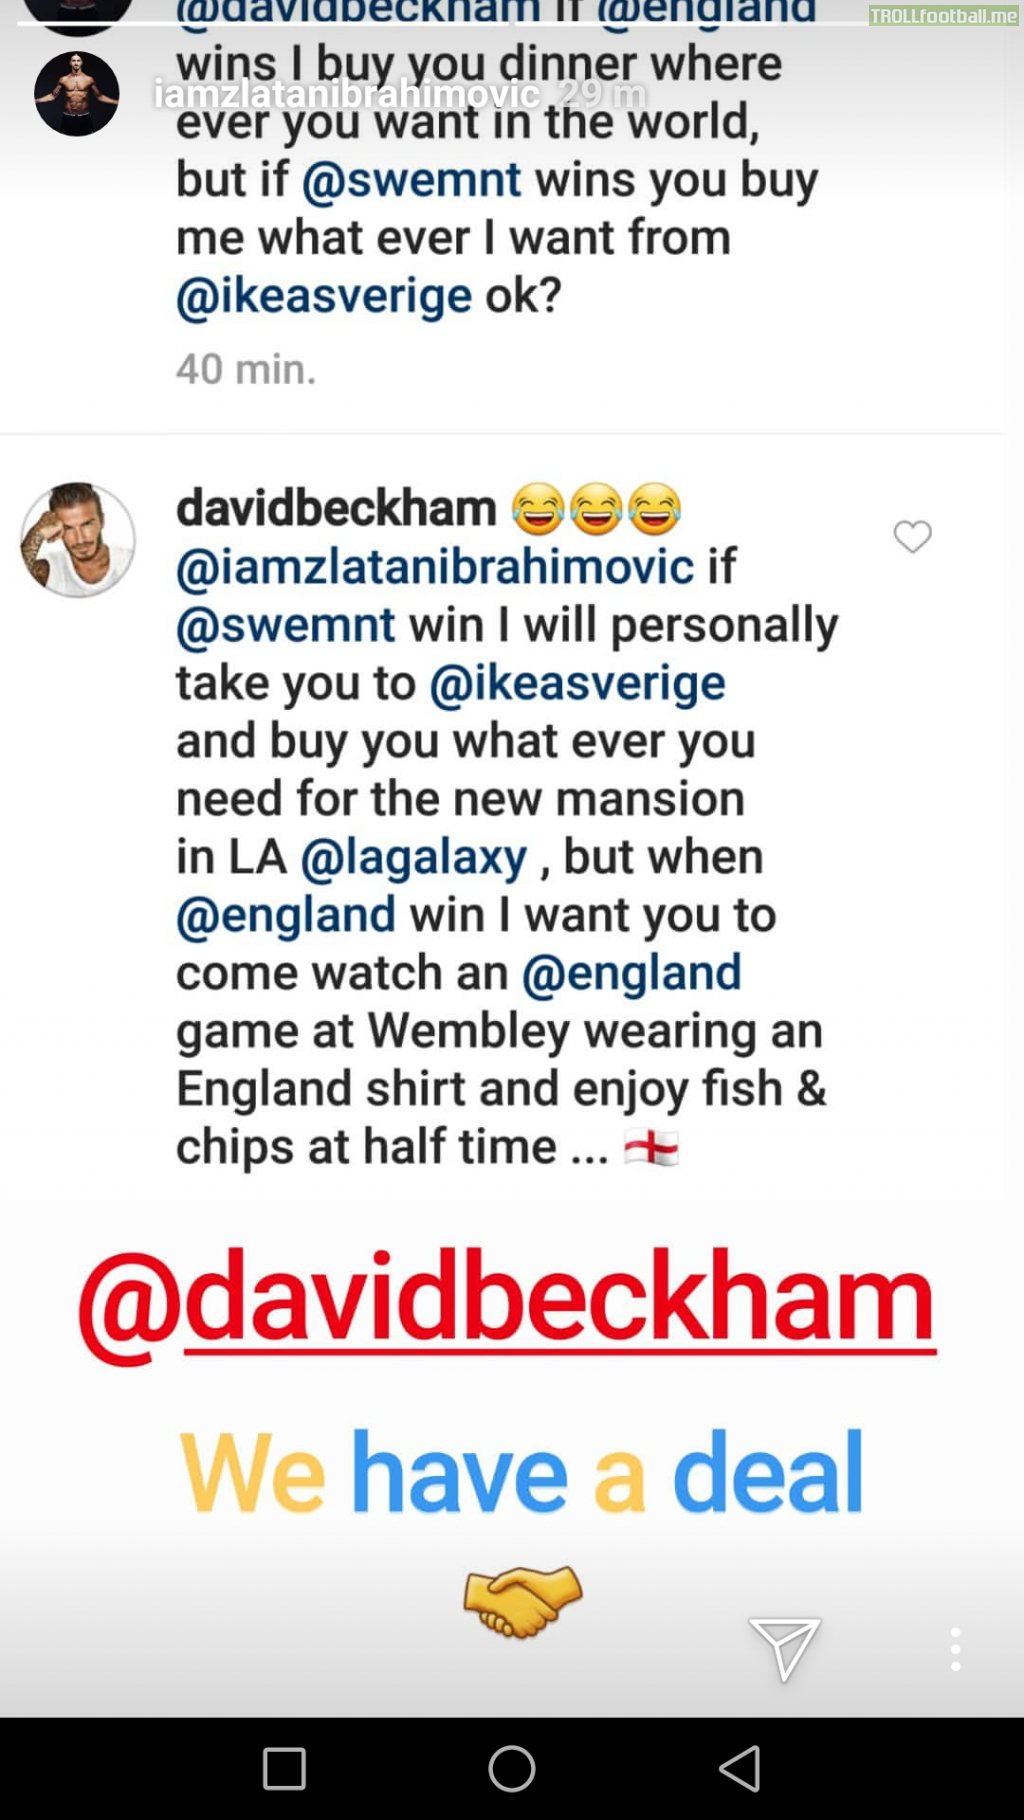 David Beckham responds to Zlatan's request.